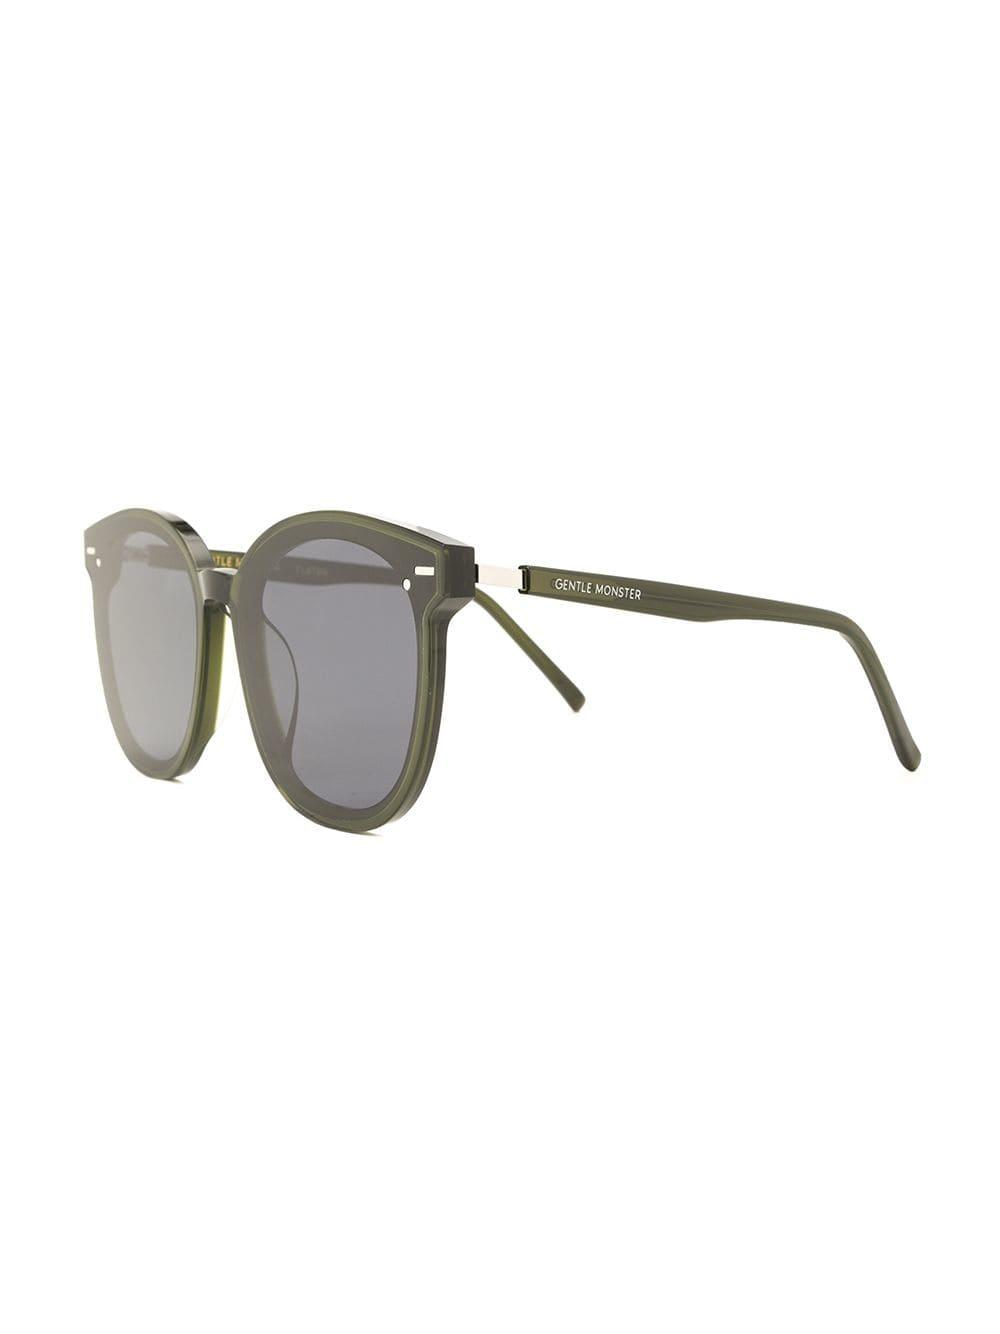 06430f04ab1 Lyst - Gentle Monster Six Bears Sunglasses in Green